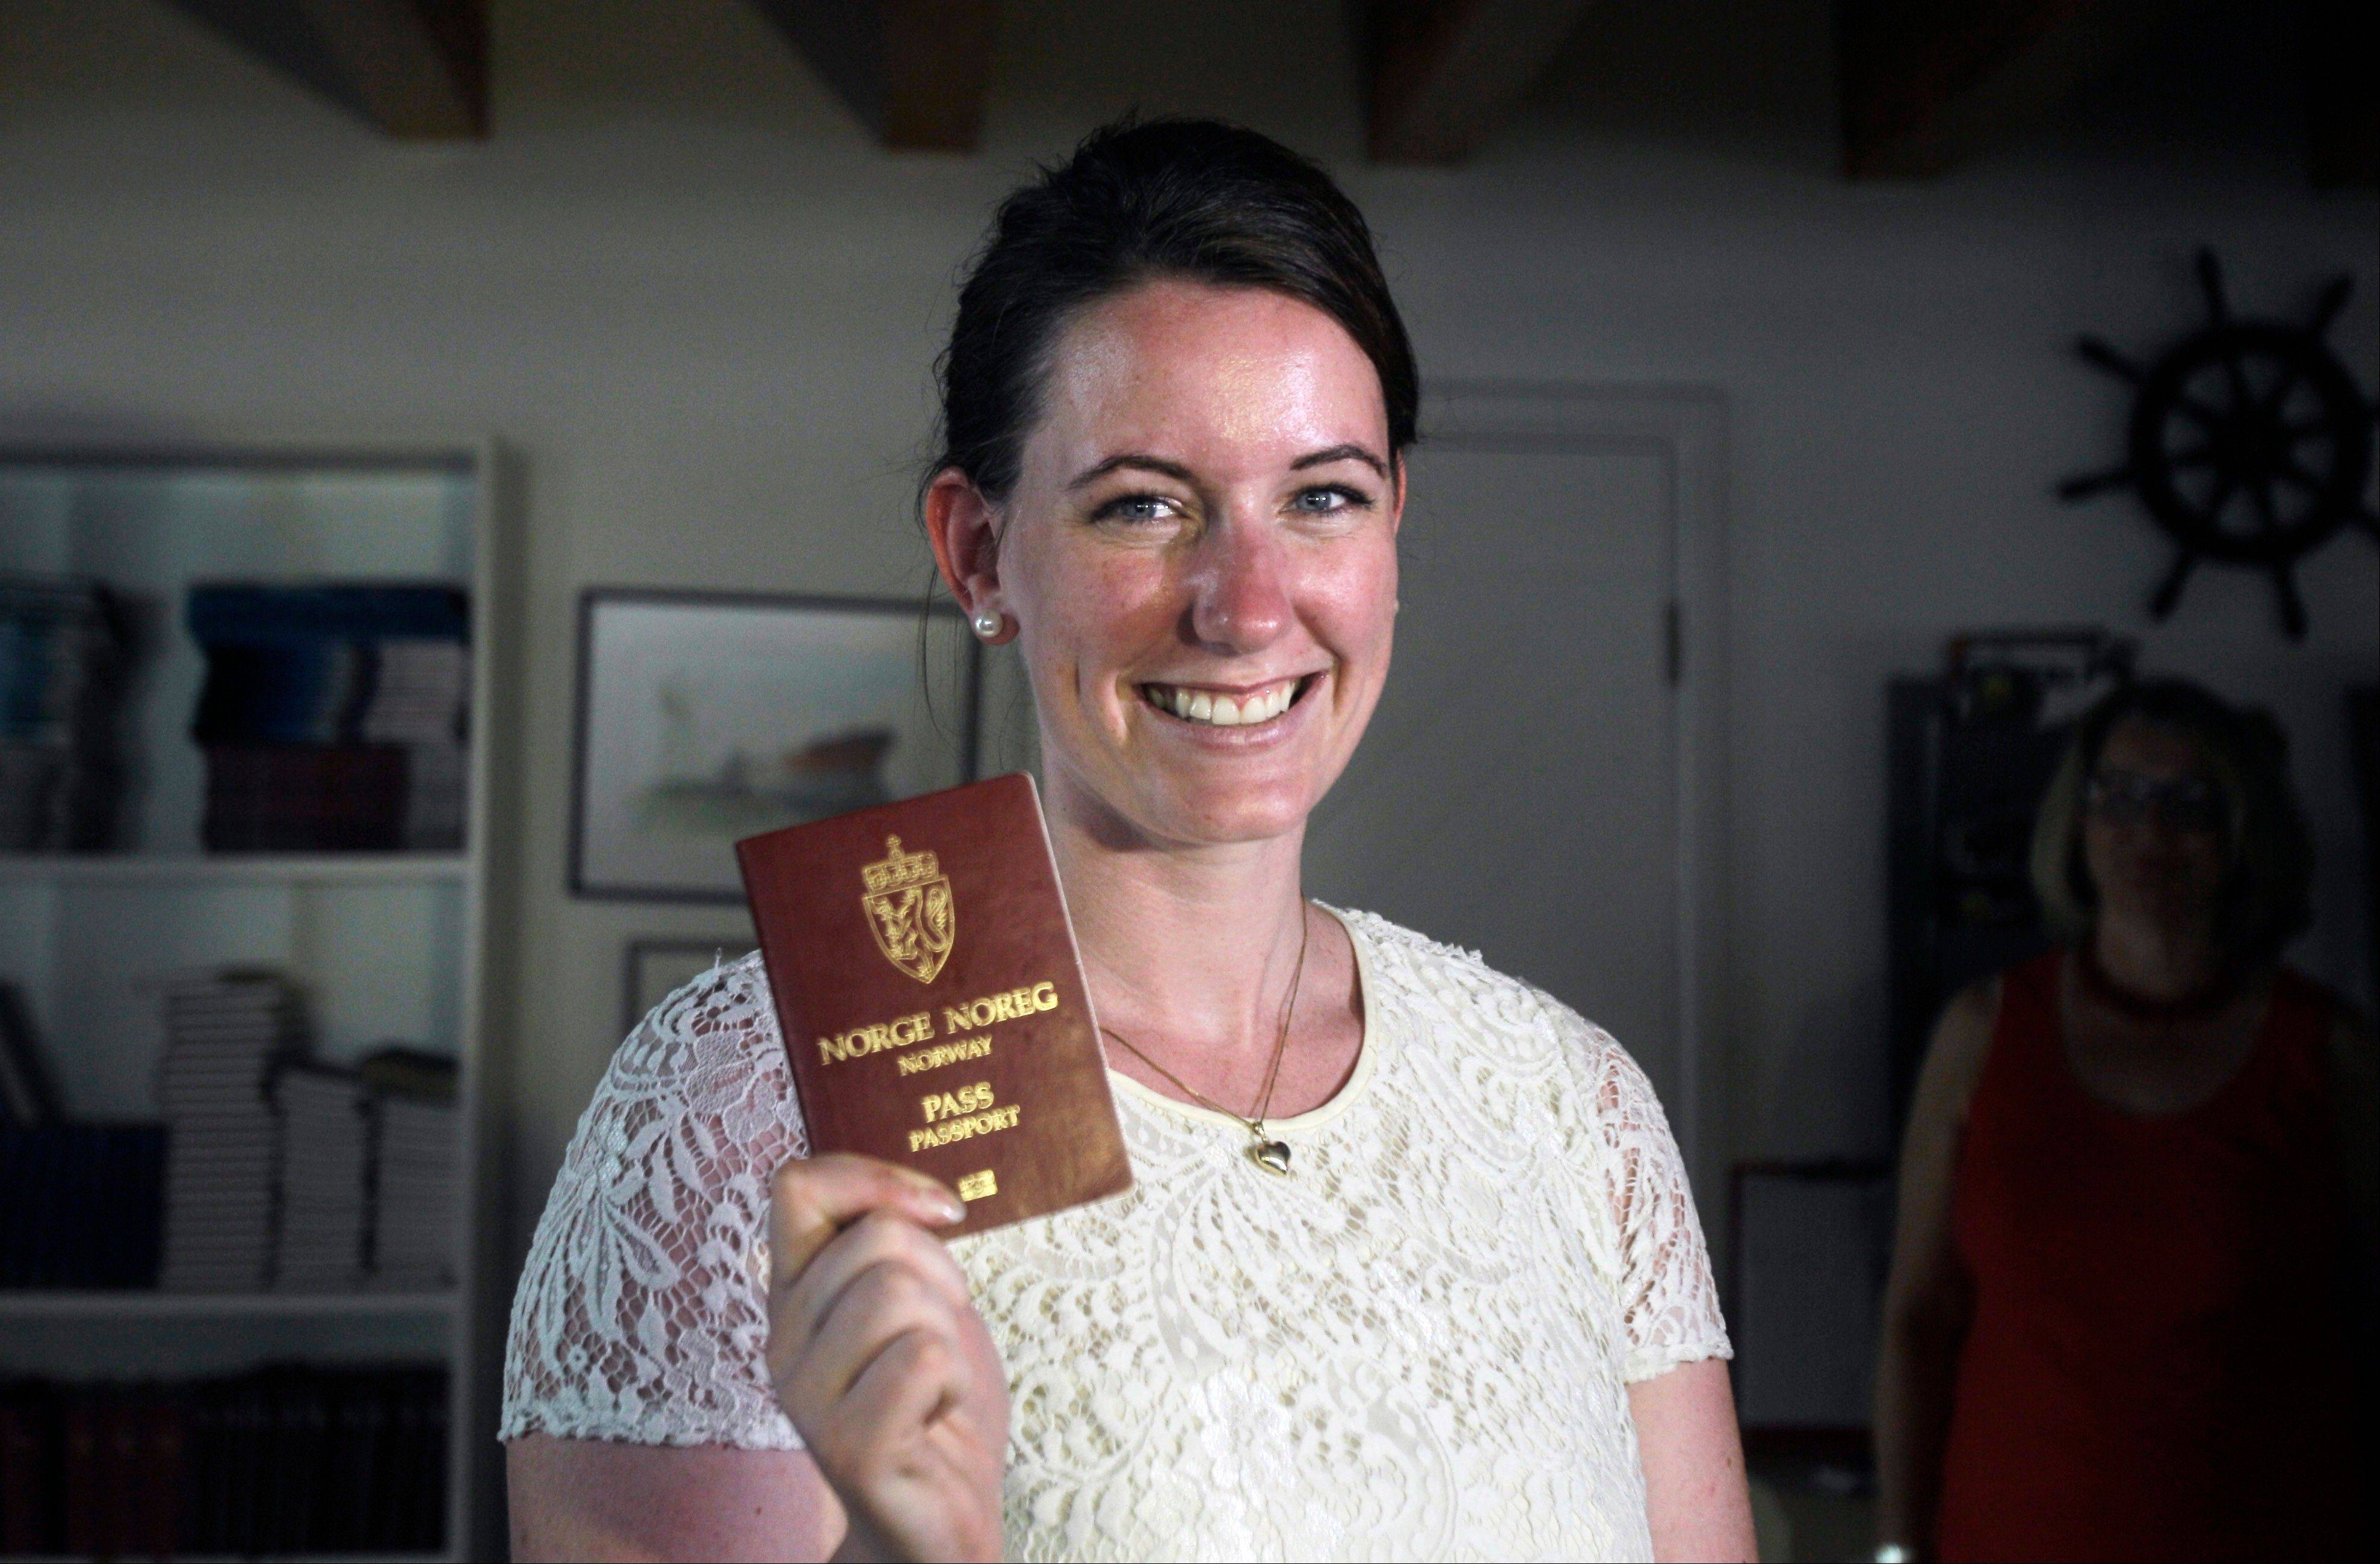 Norwegian Marte Deborah Dalelv, 24, shows her passport at the Norwegian Seaman's Club in Dubai, United Arab Emirates, Monday. At the center of a Dubai rape claim dispute, she said Sunday officials have dropped her 16-month sentence for having sex outside marriage and she is free to leave the country.